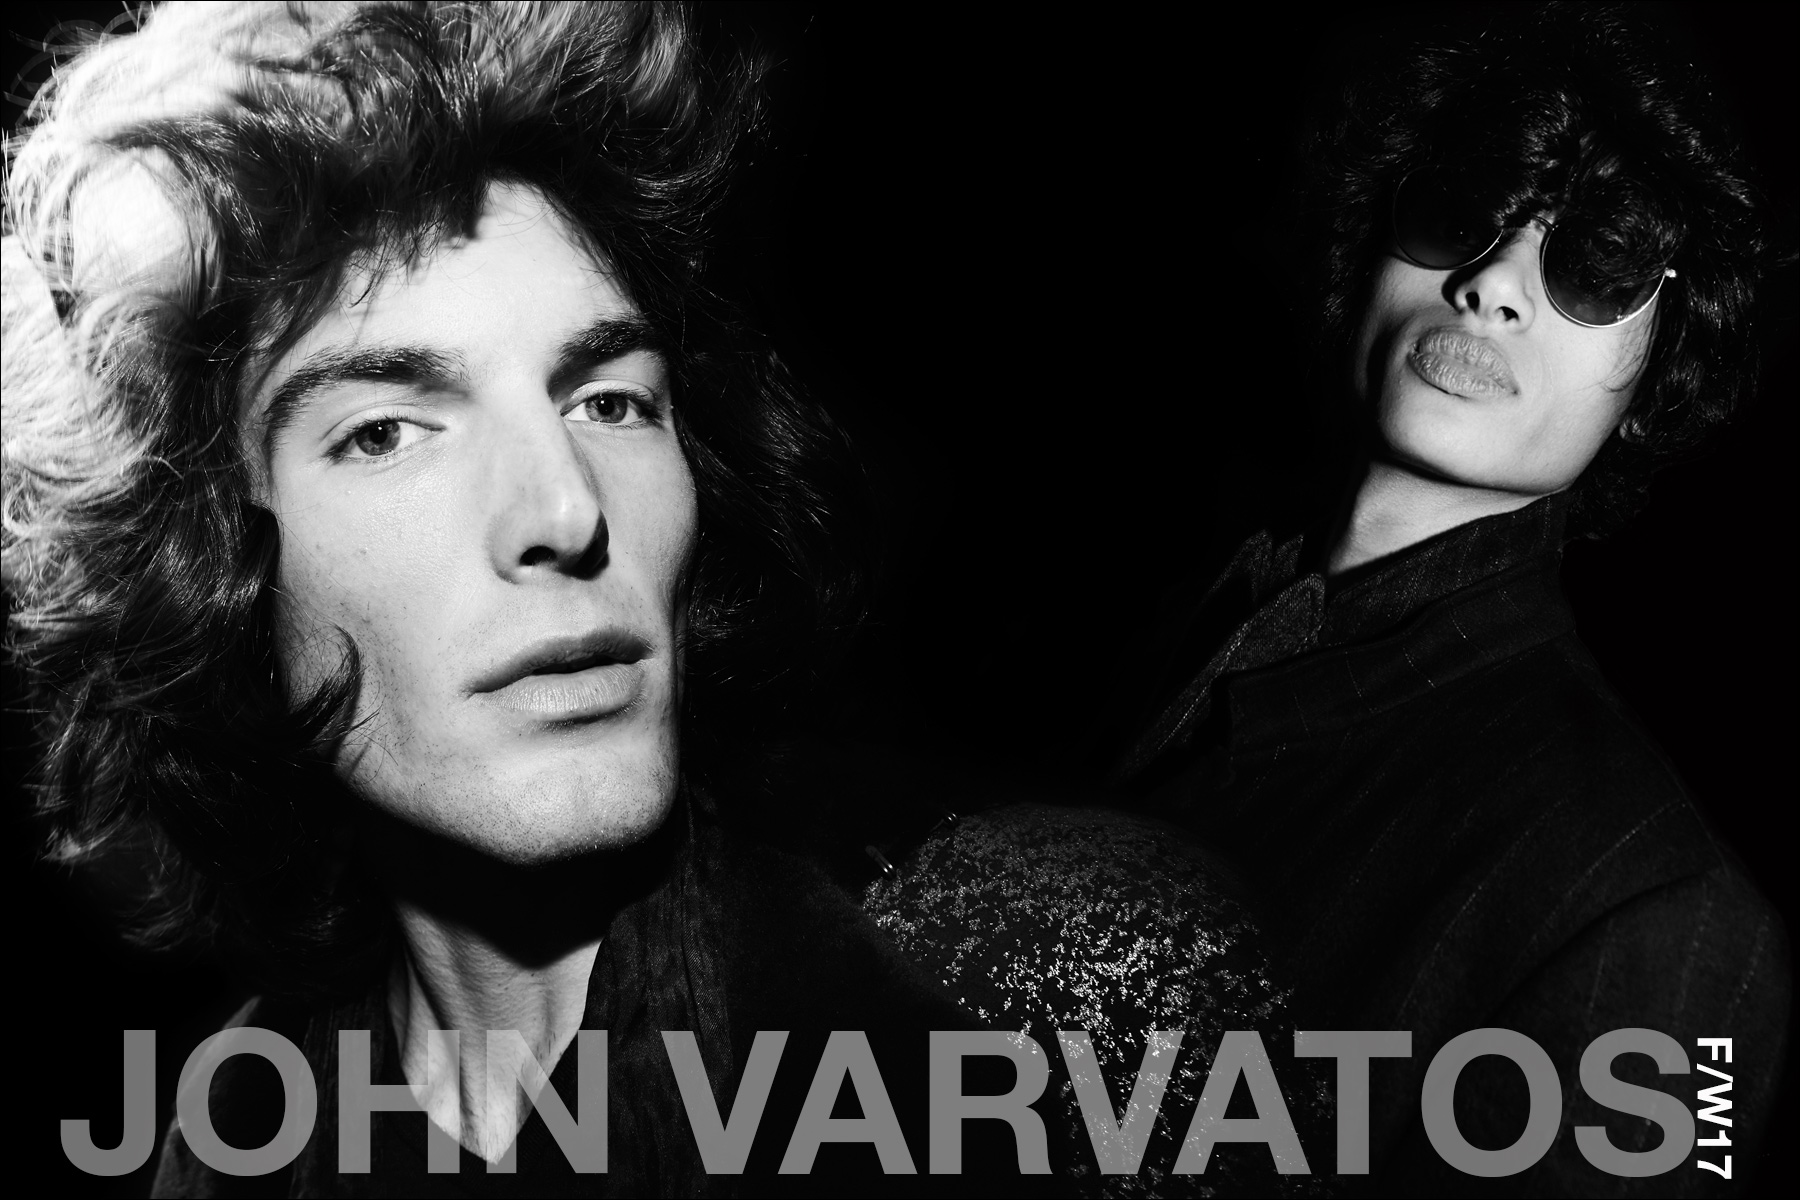 John Varvatos F/W17 menswear collection. Photographed by Alexander Thompson for Ponyboy magazine NY.